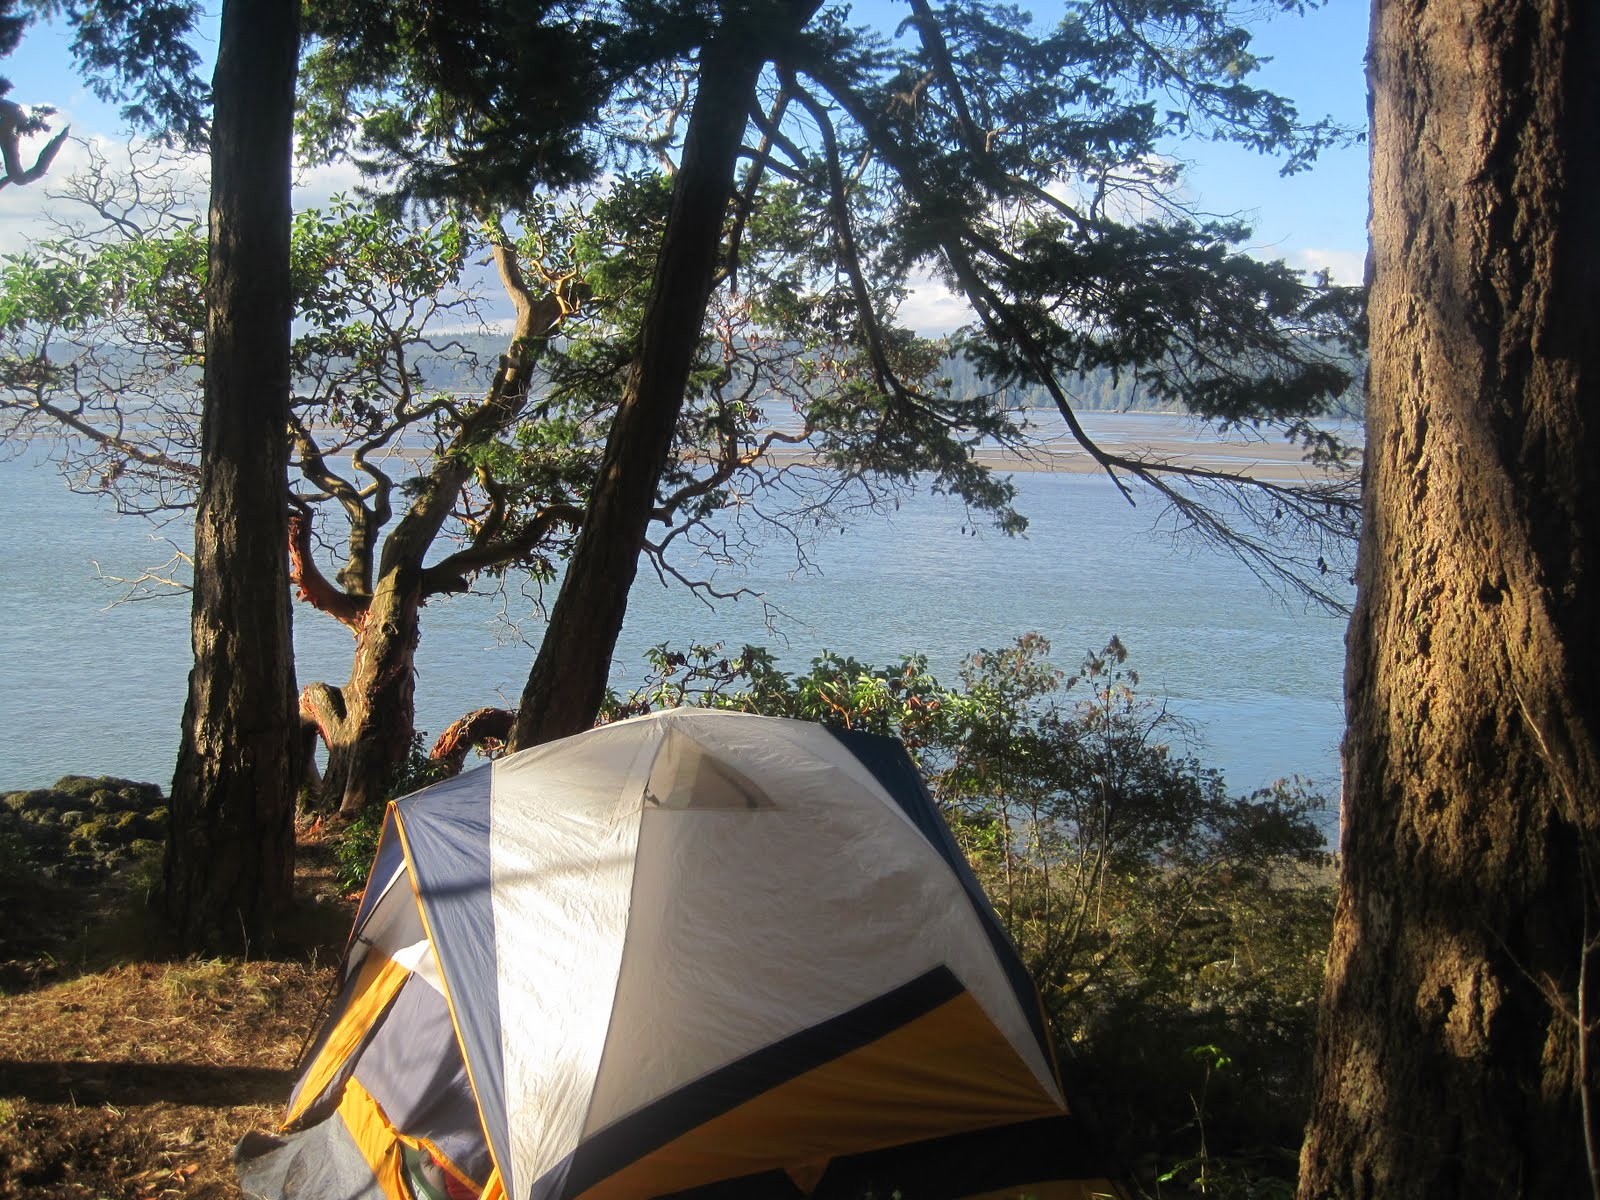 Tent with 270 degree view on Goat Island